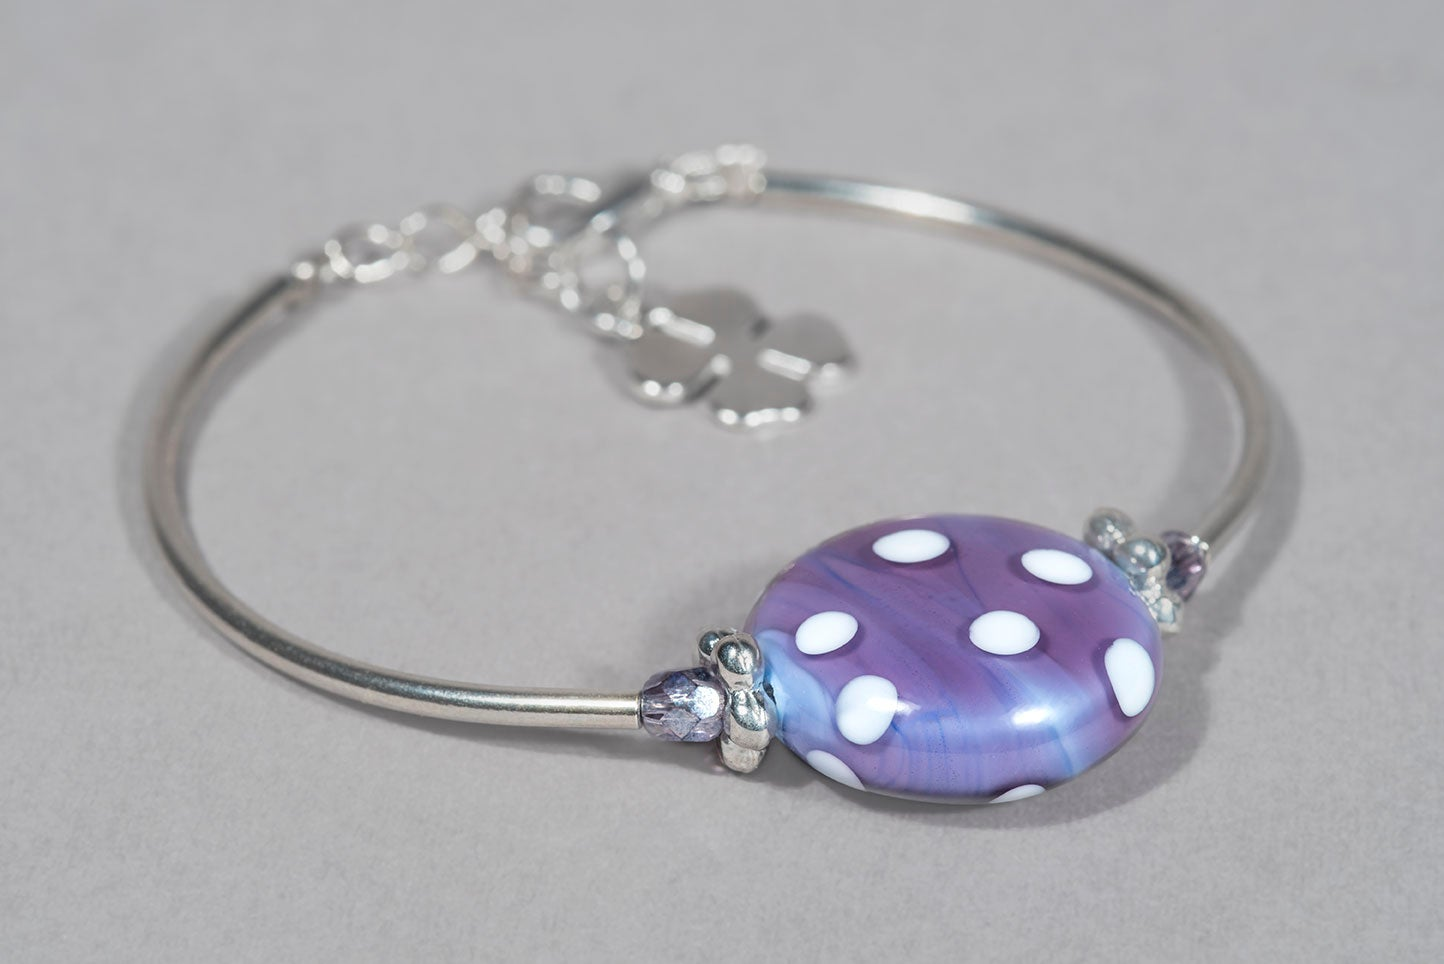 Image of BRACCIALE MINNIE in perle di vetro di Murano